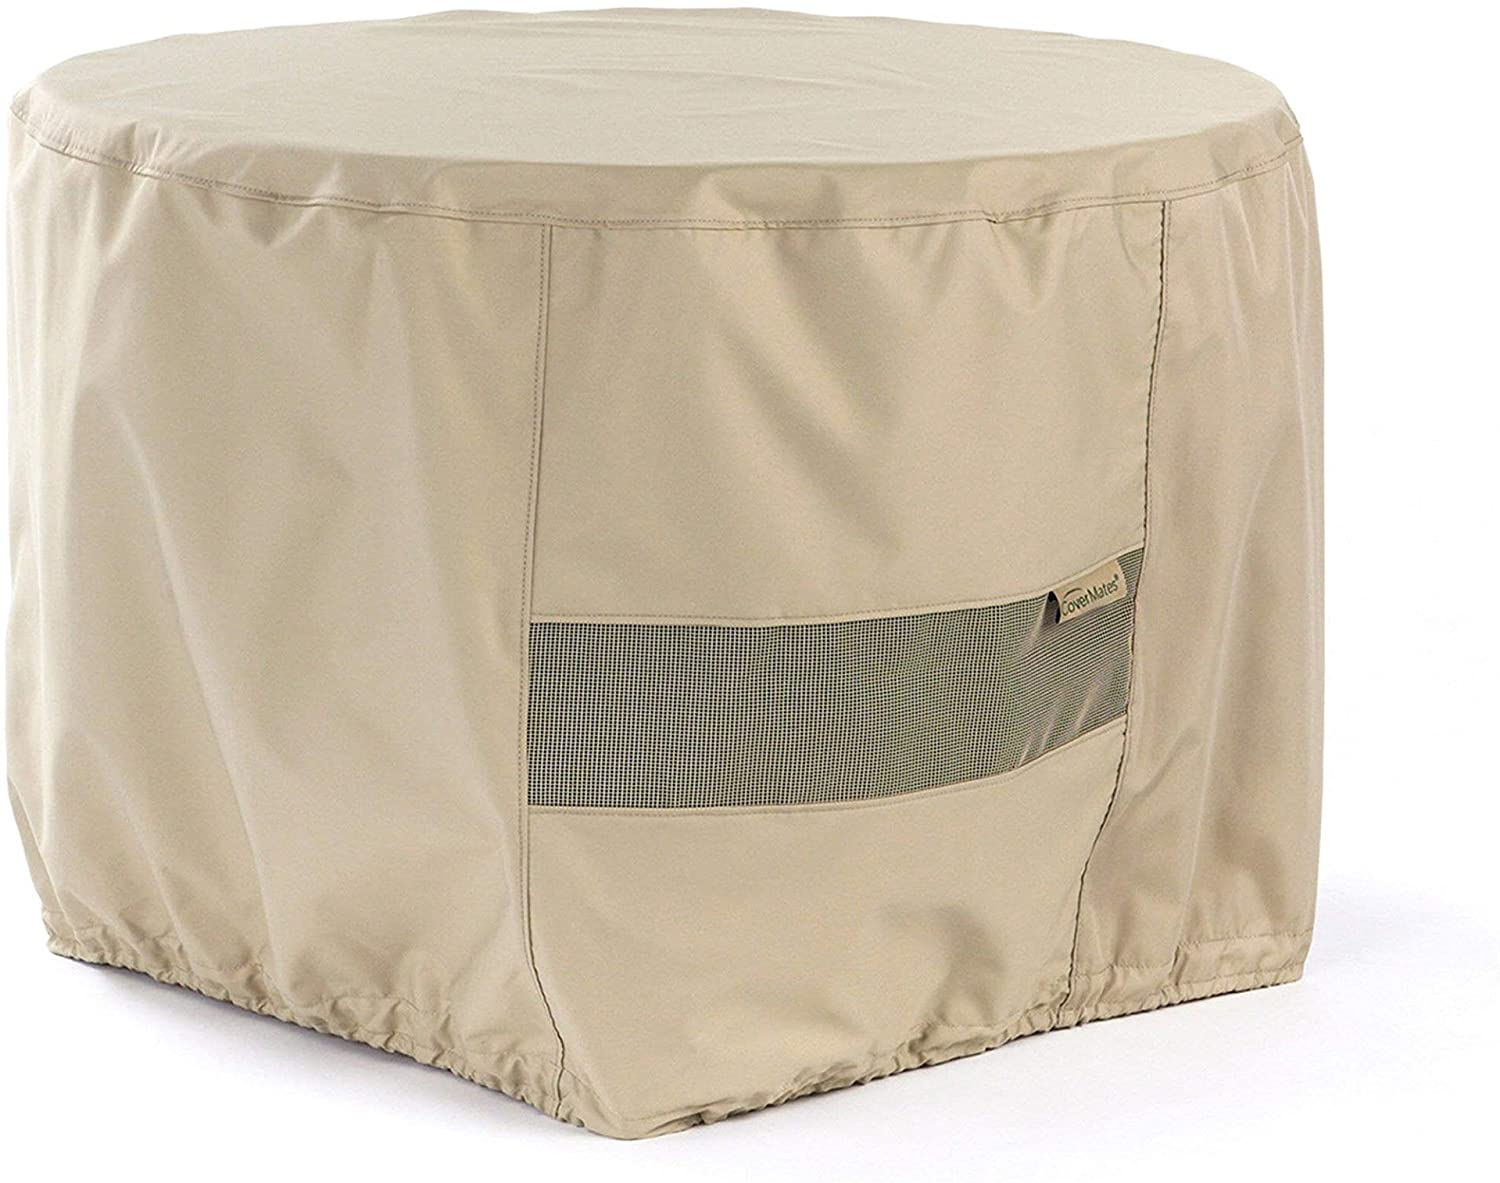 Max 40% OFF Regular dealer Covermates Outdoor Round Ottoman Cover Polyest Resistant Water -